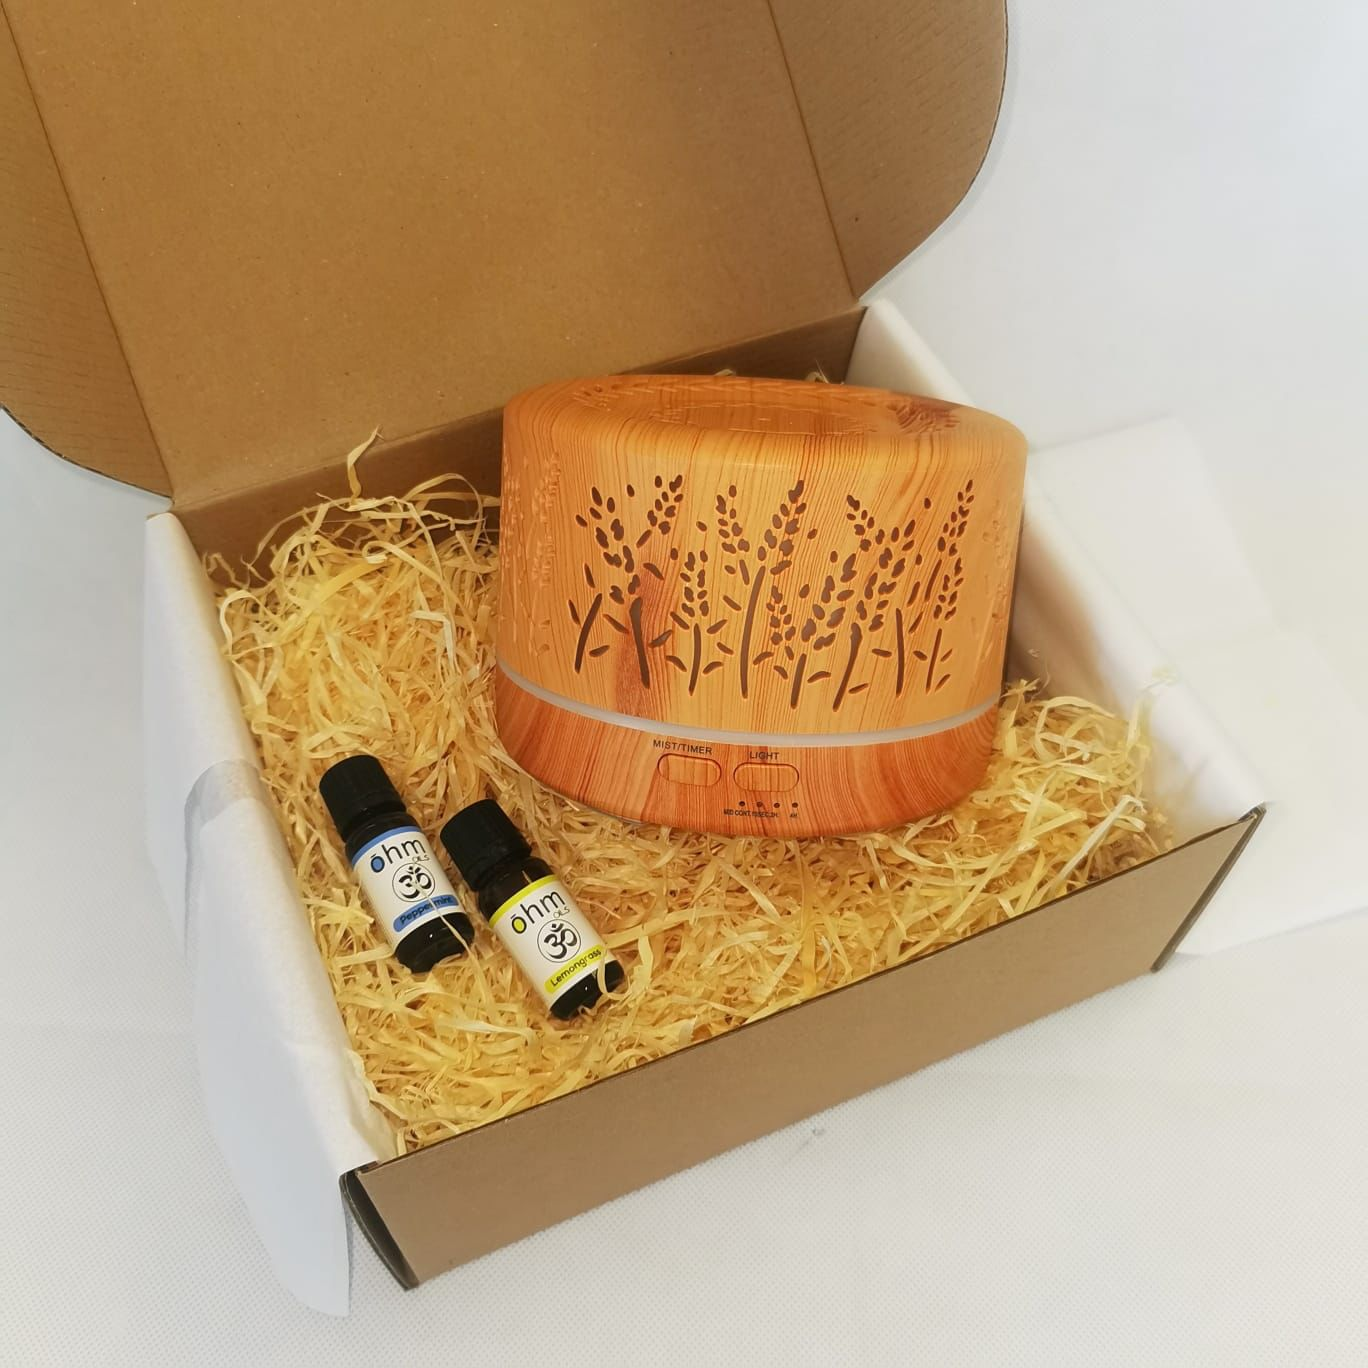 700ml Diffuser With Essential Oils